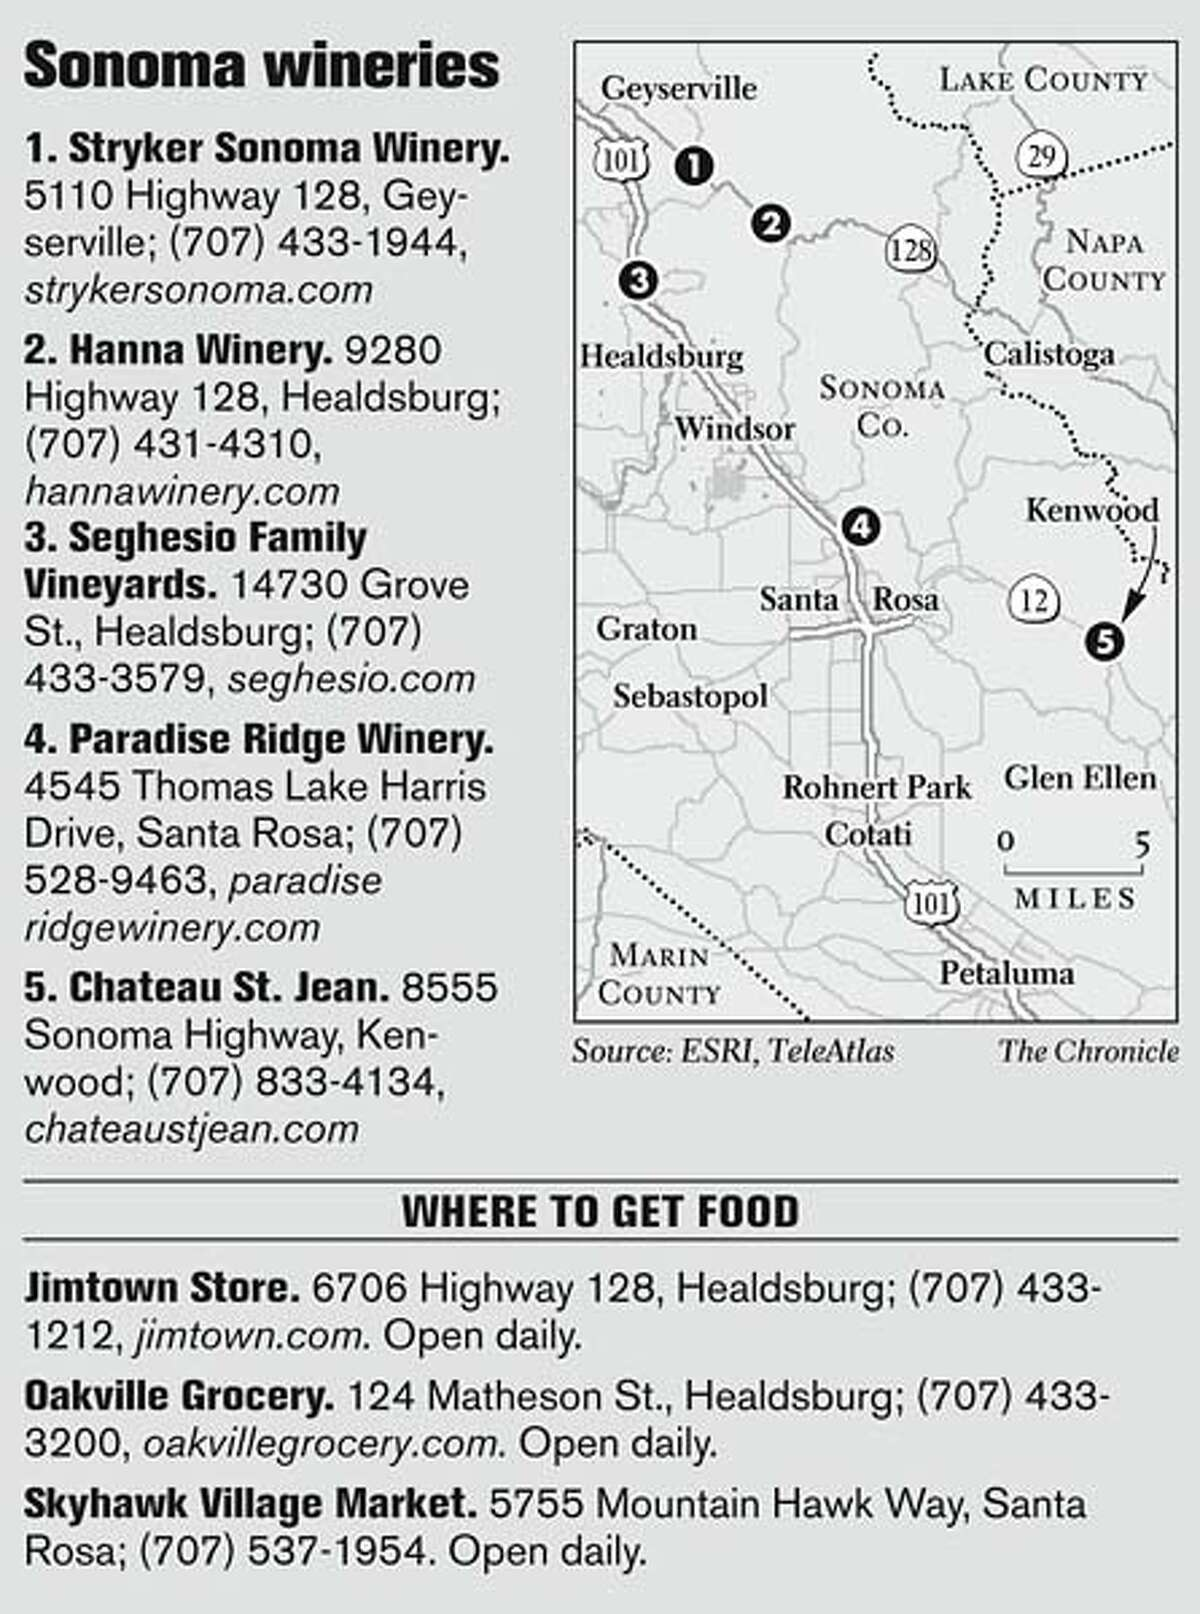 Sonoma wineries. Chronicle Graphic